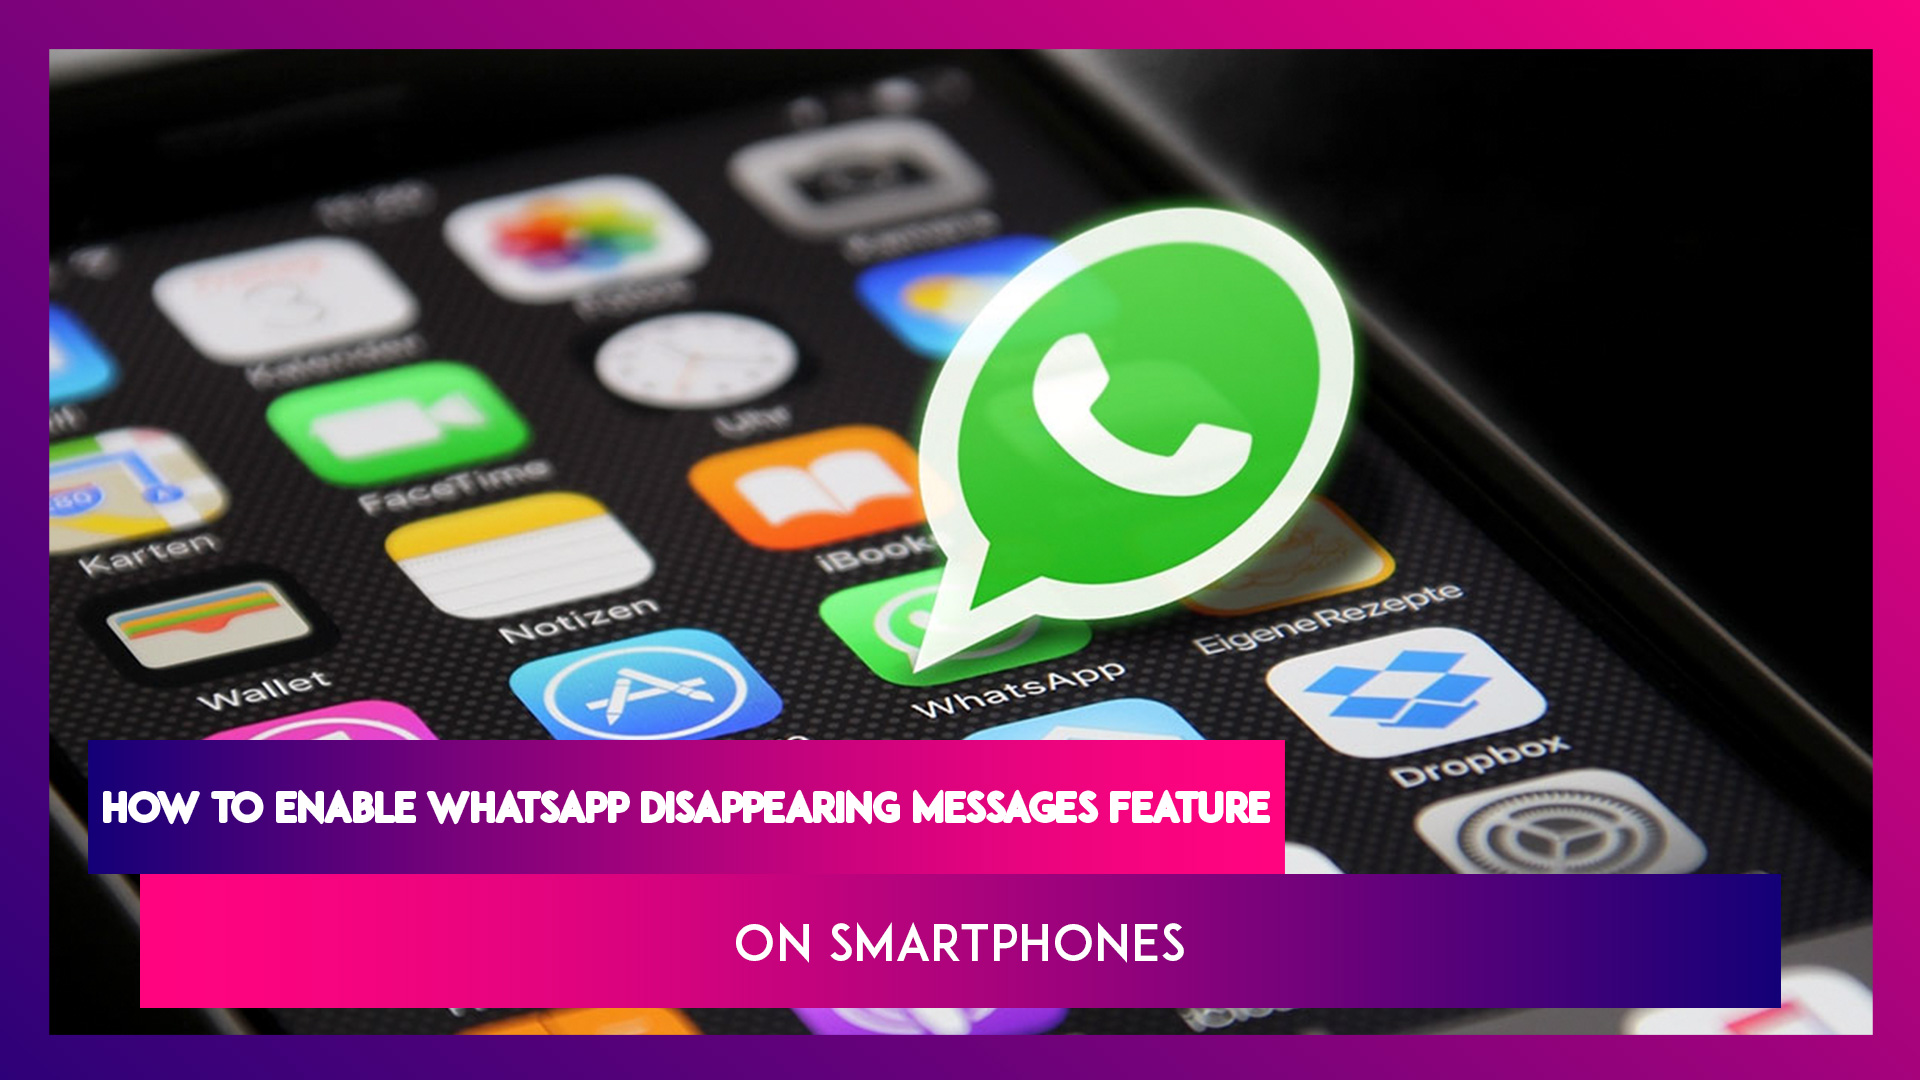 WhatsApp Disappearing Messages Now Available in India, Here's How to Enable This Feature